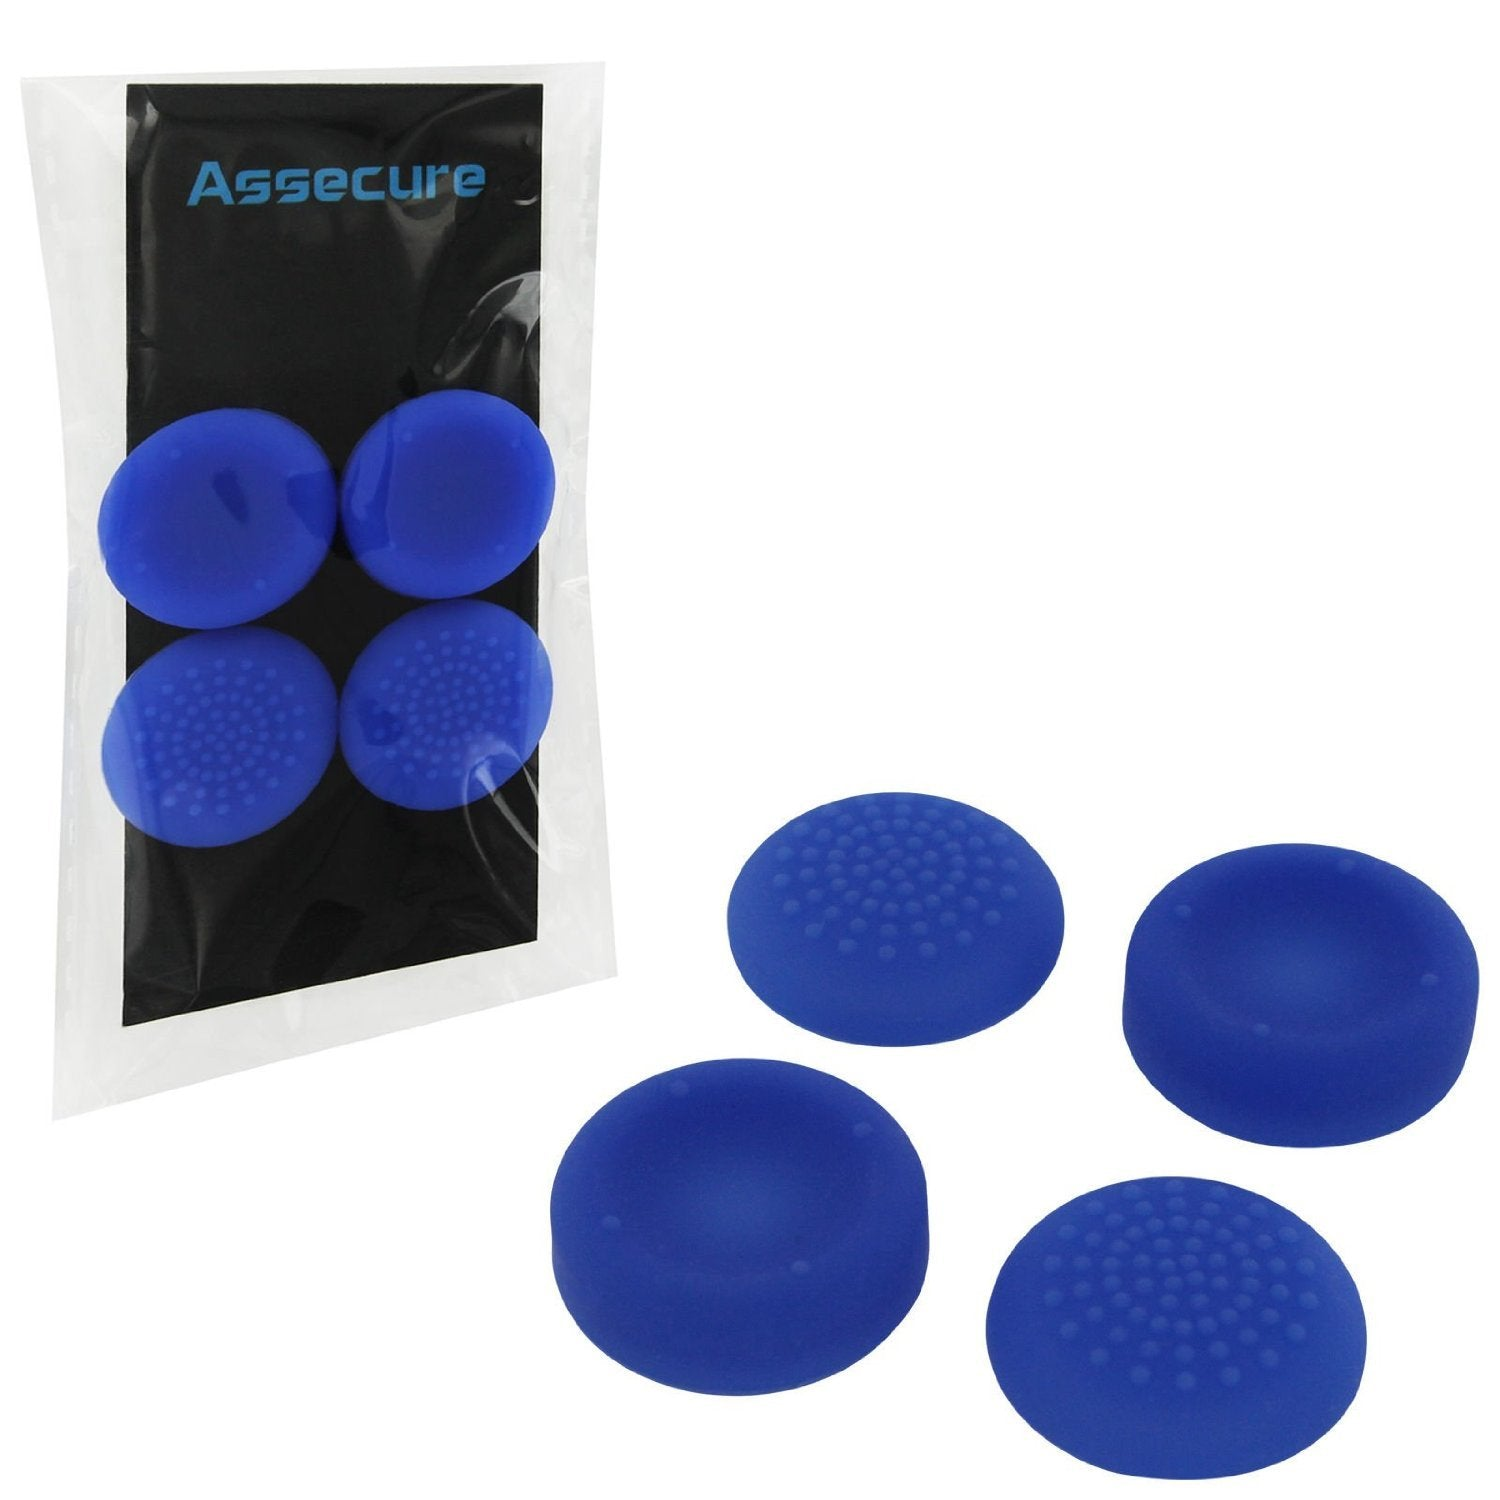 PS4 Silicone Thumb Grips: Concave & Convex - Blue - PS4